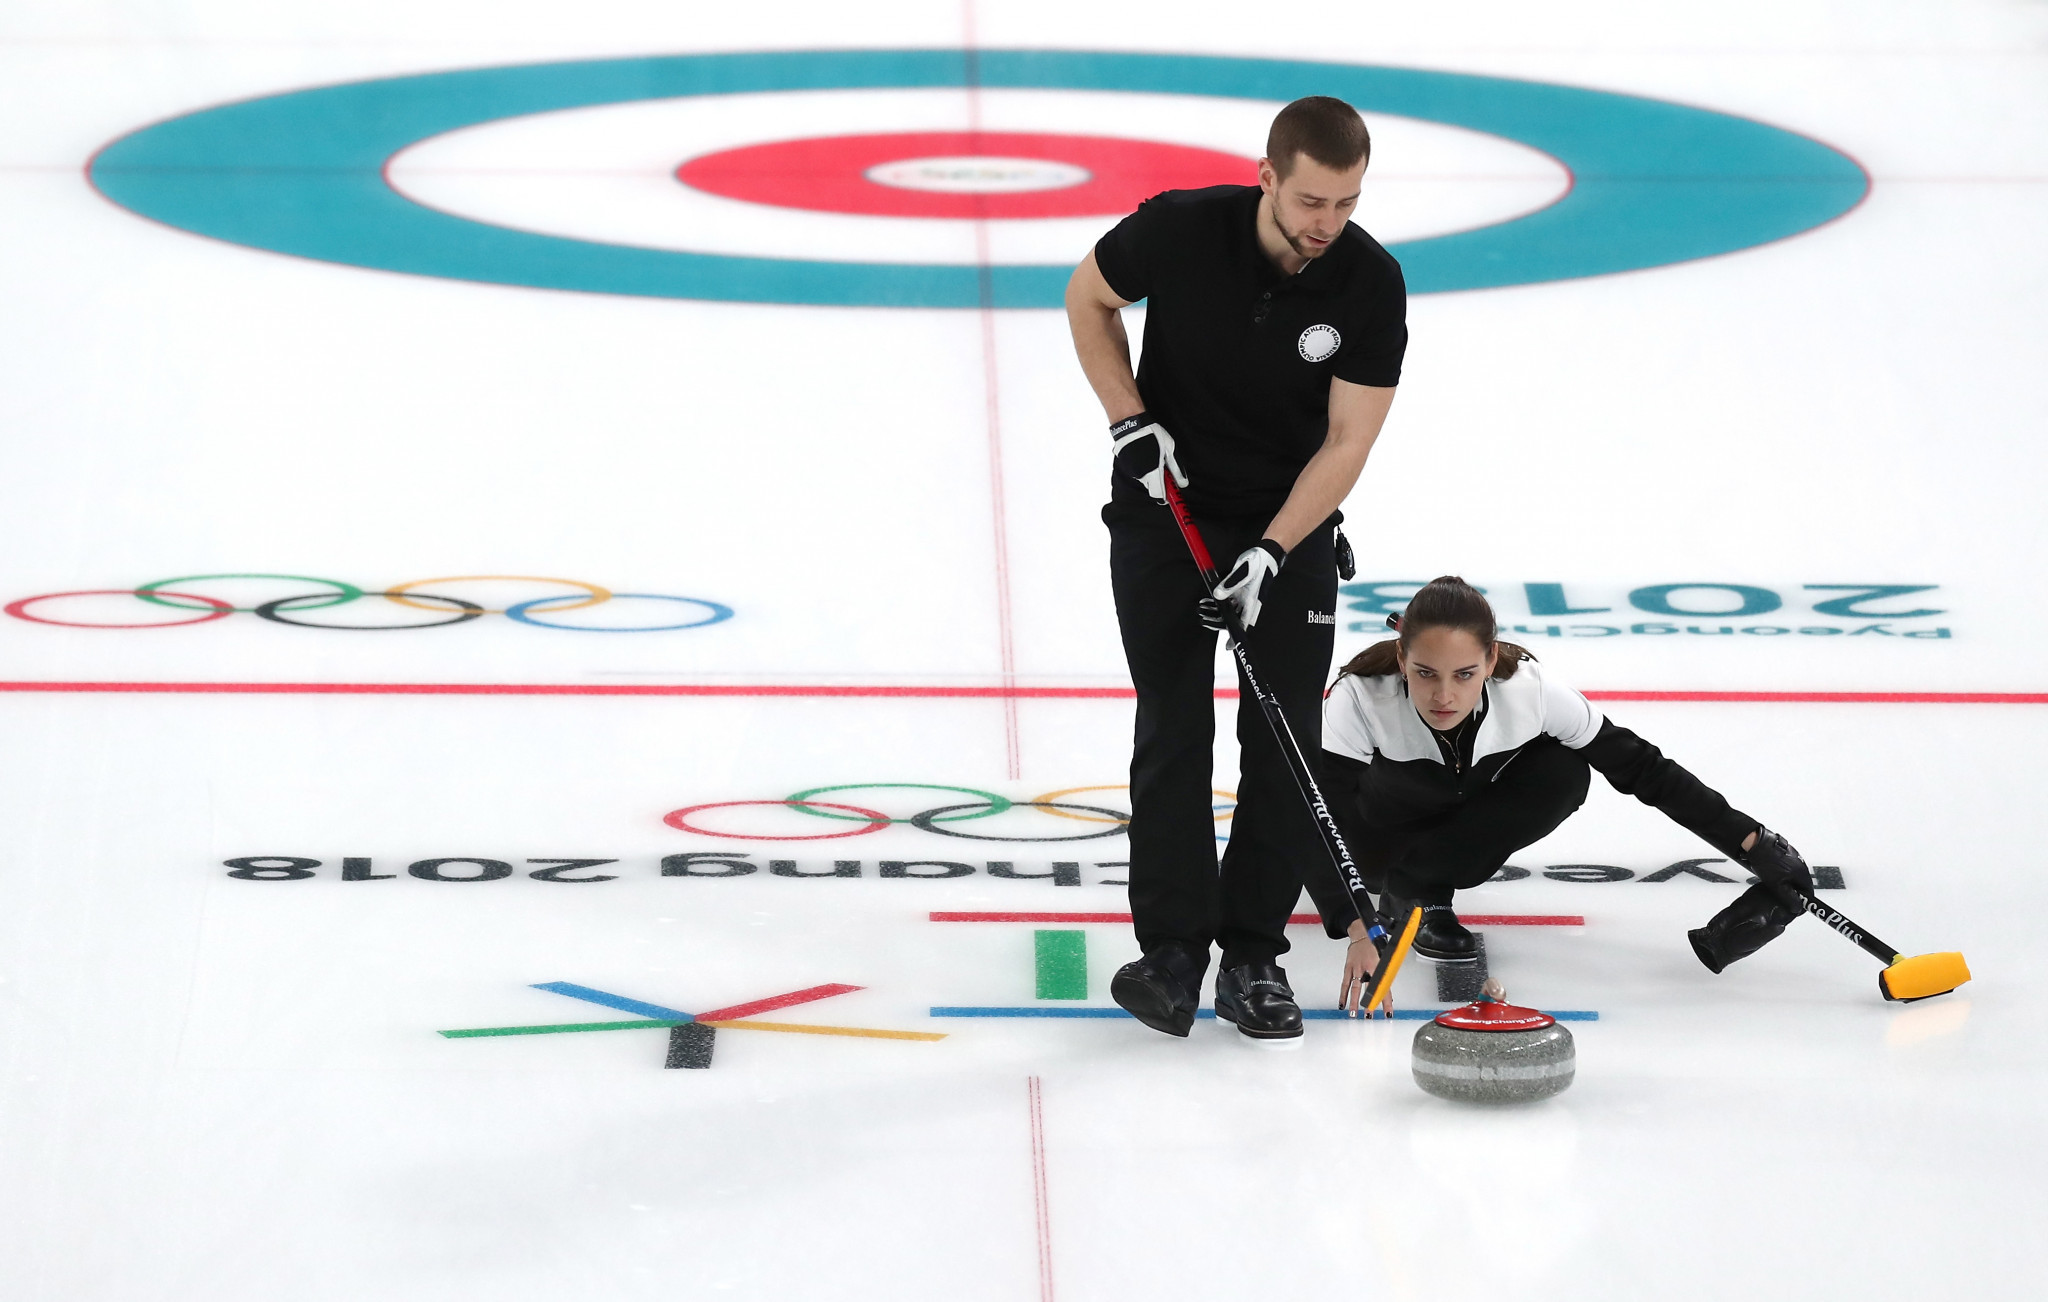 Russian curler Aleksandr Krushelnitckii tested positive for meldonium during last year's Winter Olympic Games in Pyeongchang ©Getty Images